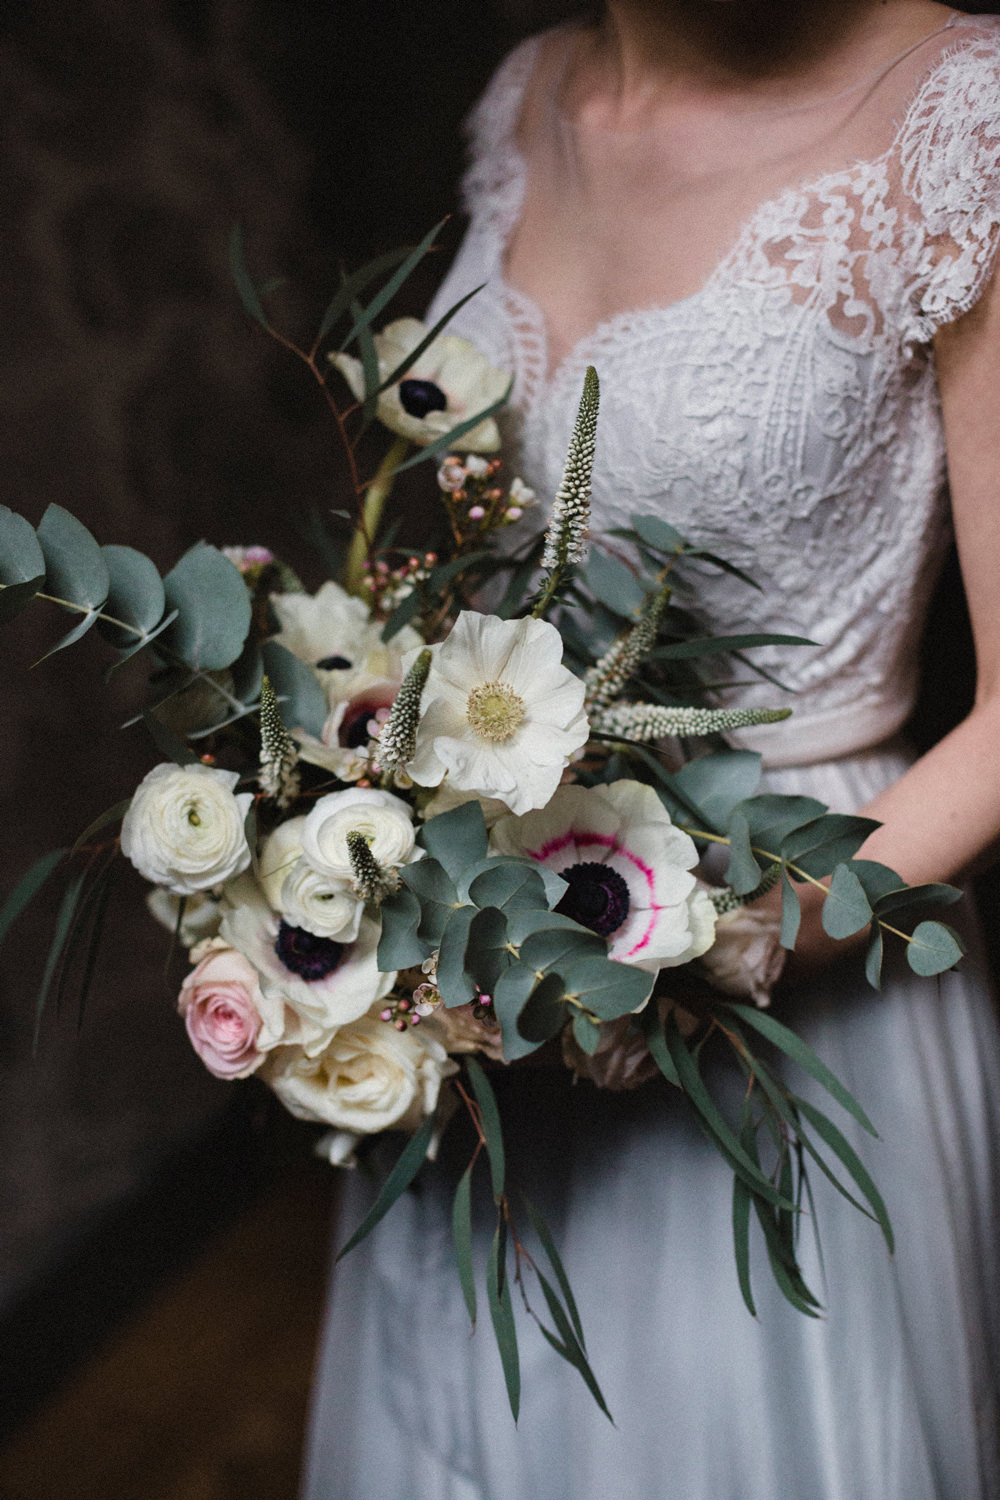 Bouquet Flowers Bride Bridal Peach Pink Anemone Rose Ranunculus Eucalyptus Whimsical Elegant Wedding Ideas Mandorla London